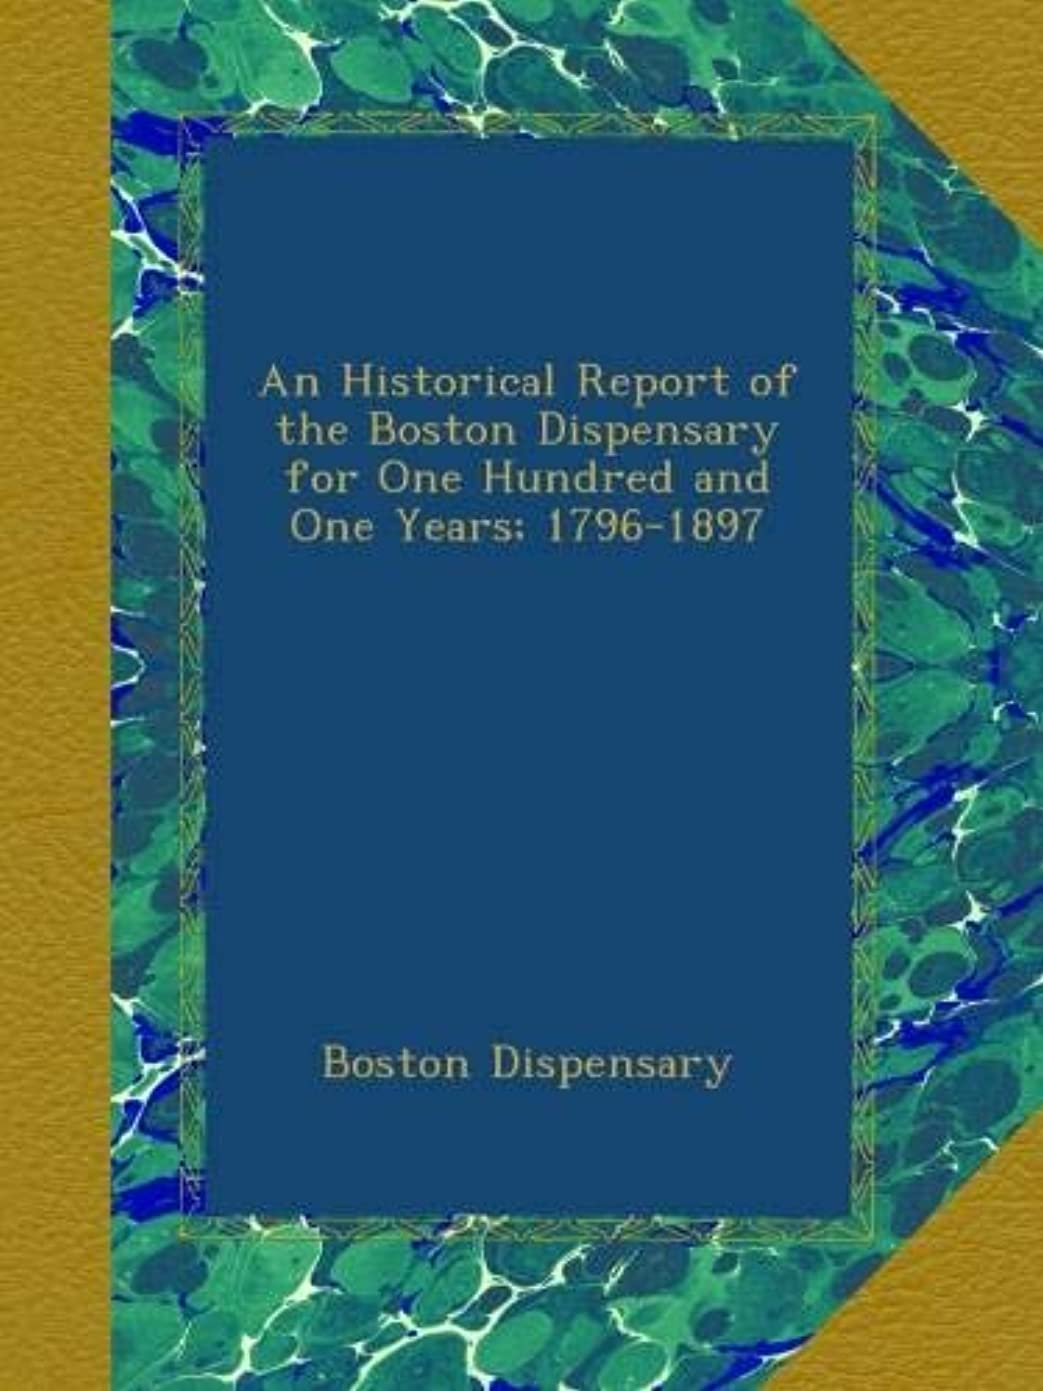 命令より良い回転An Historical Report of the Boston Dispensary for One Hundred and One Years; 1796-1897